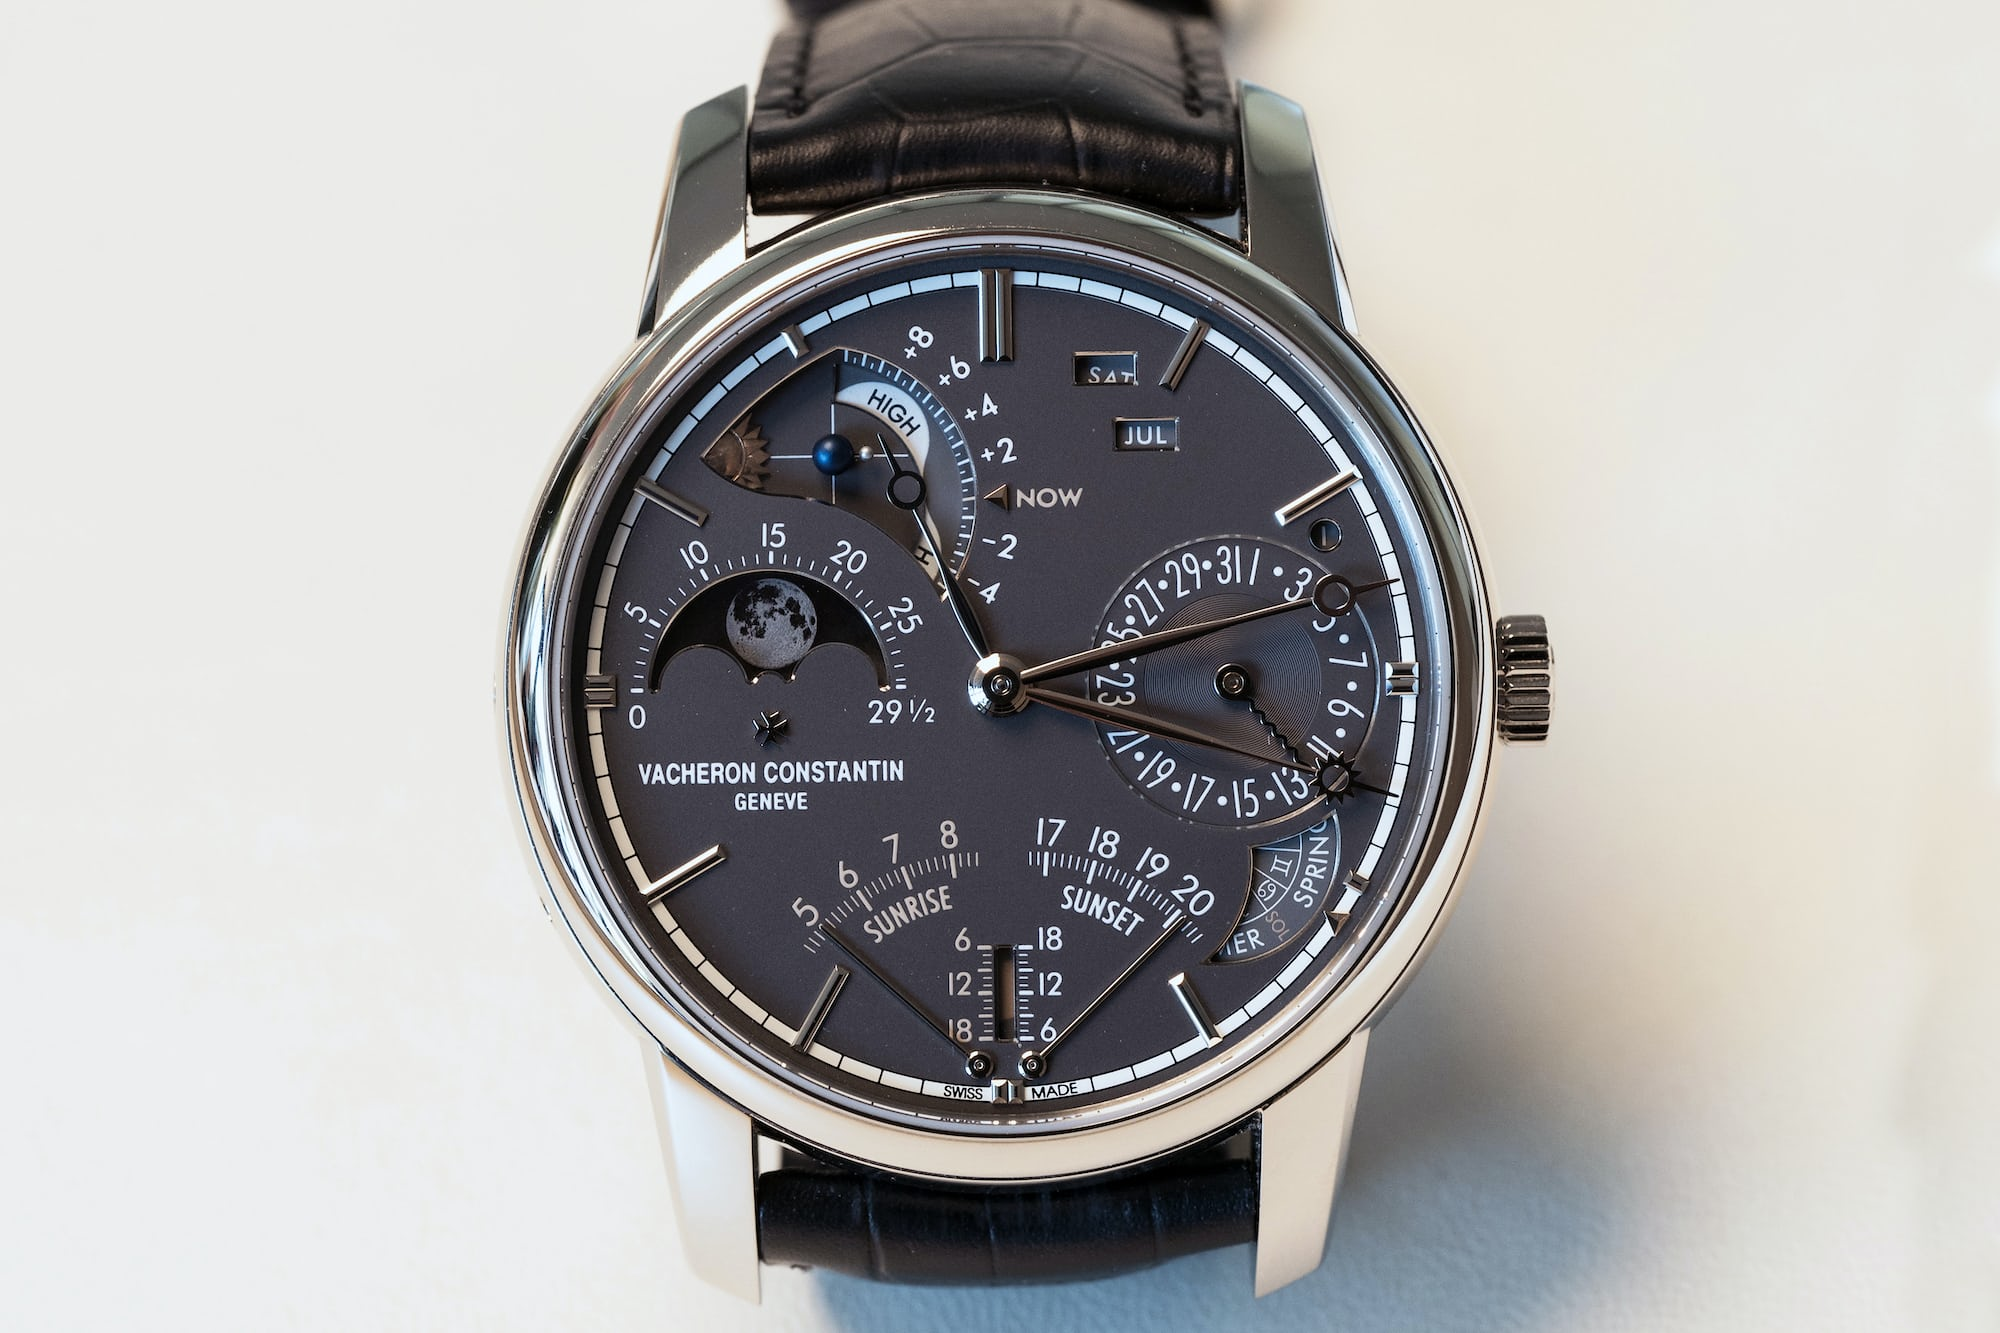 Year In Review: The Top 25 Most Popular HODINKEE Posts Of 2017 Year In Review: The Top 25 Most Popular HODINKEE Posts Of 2017 P5050735